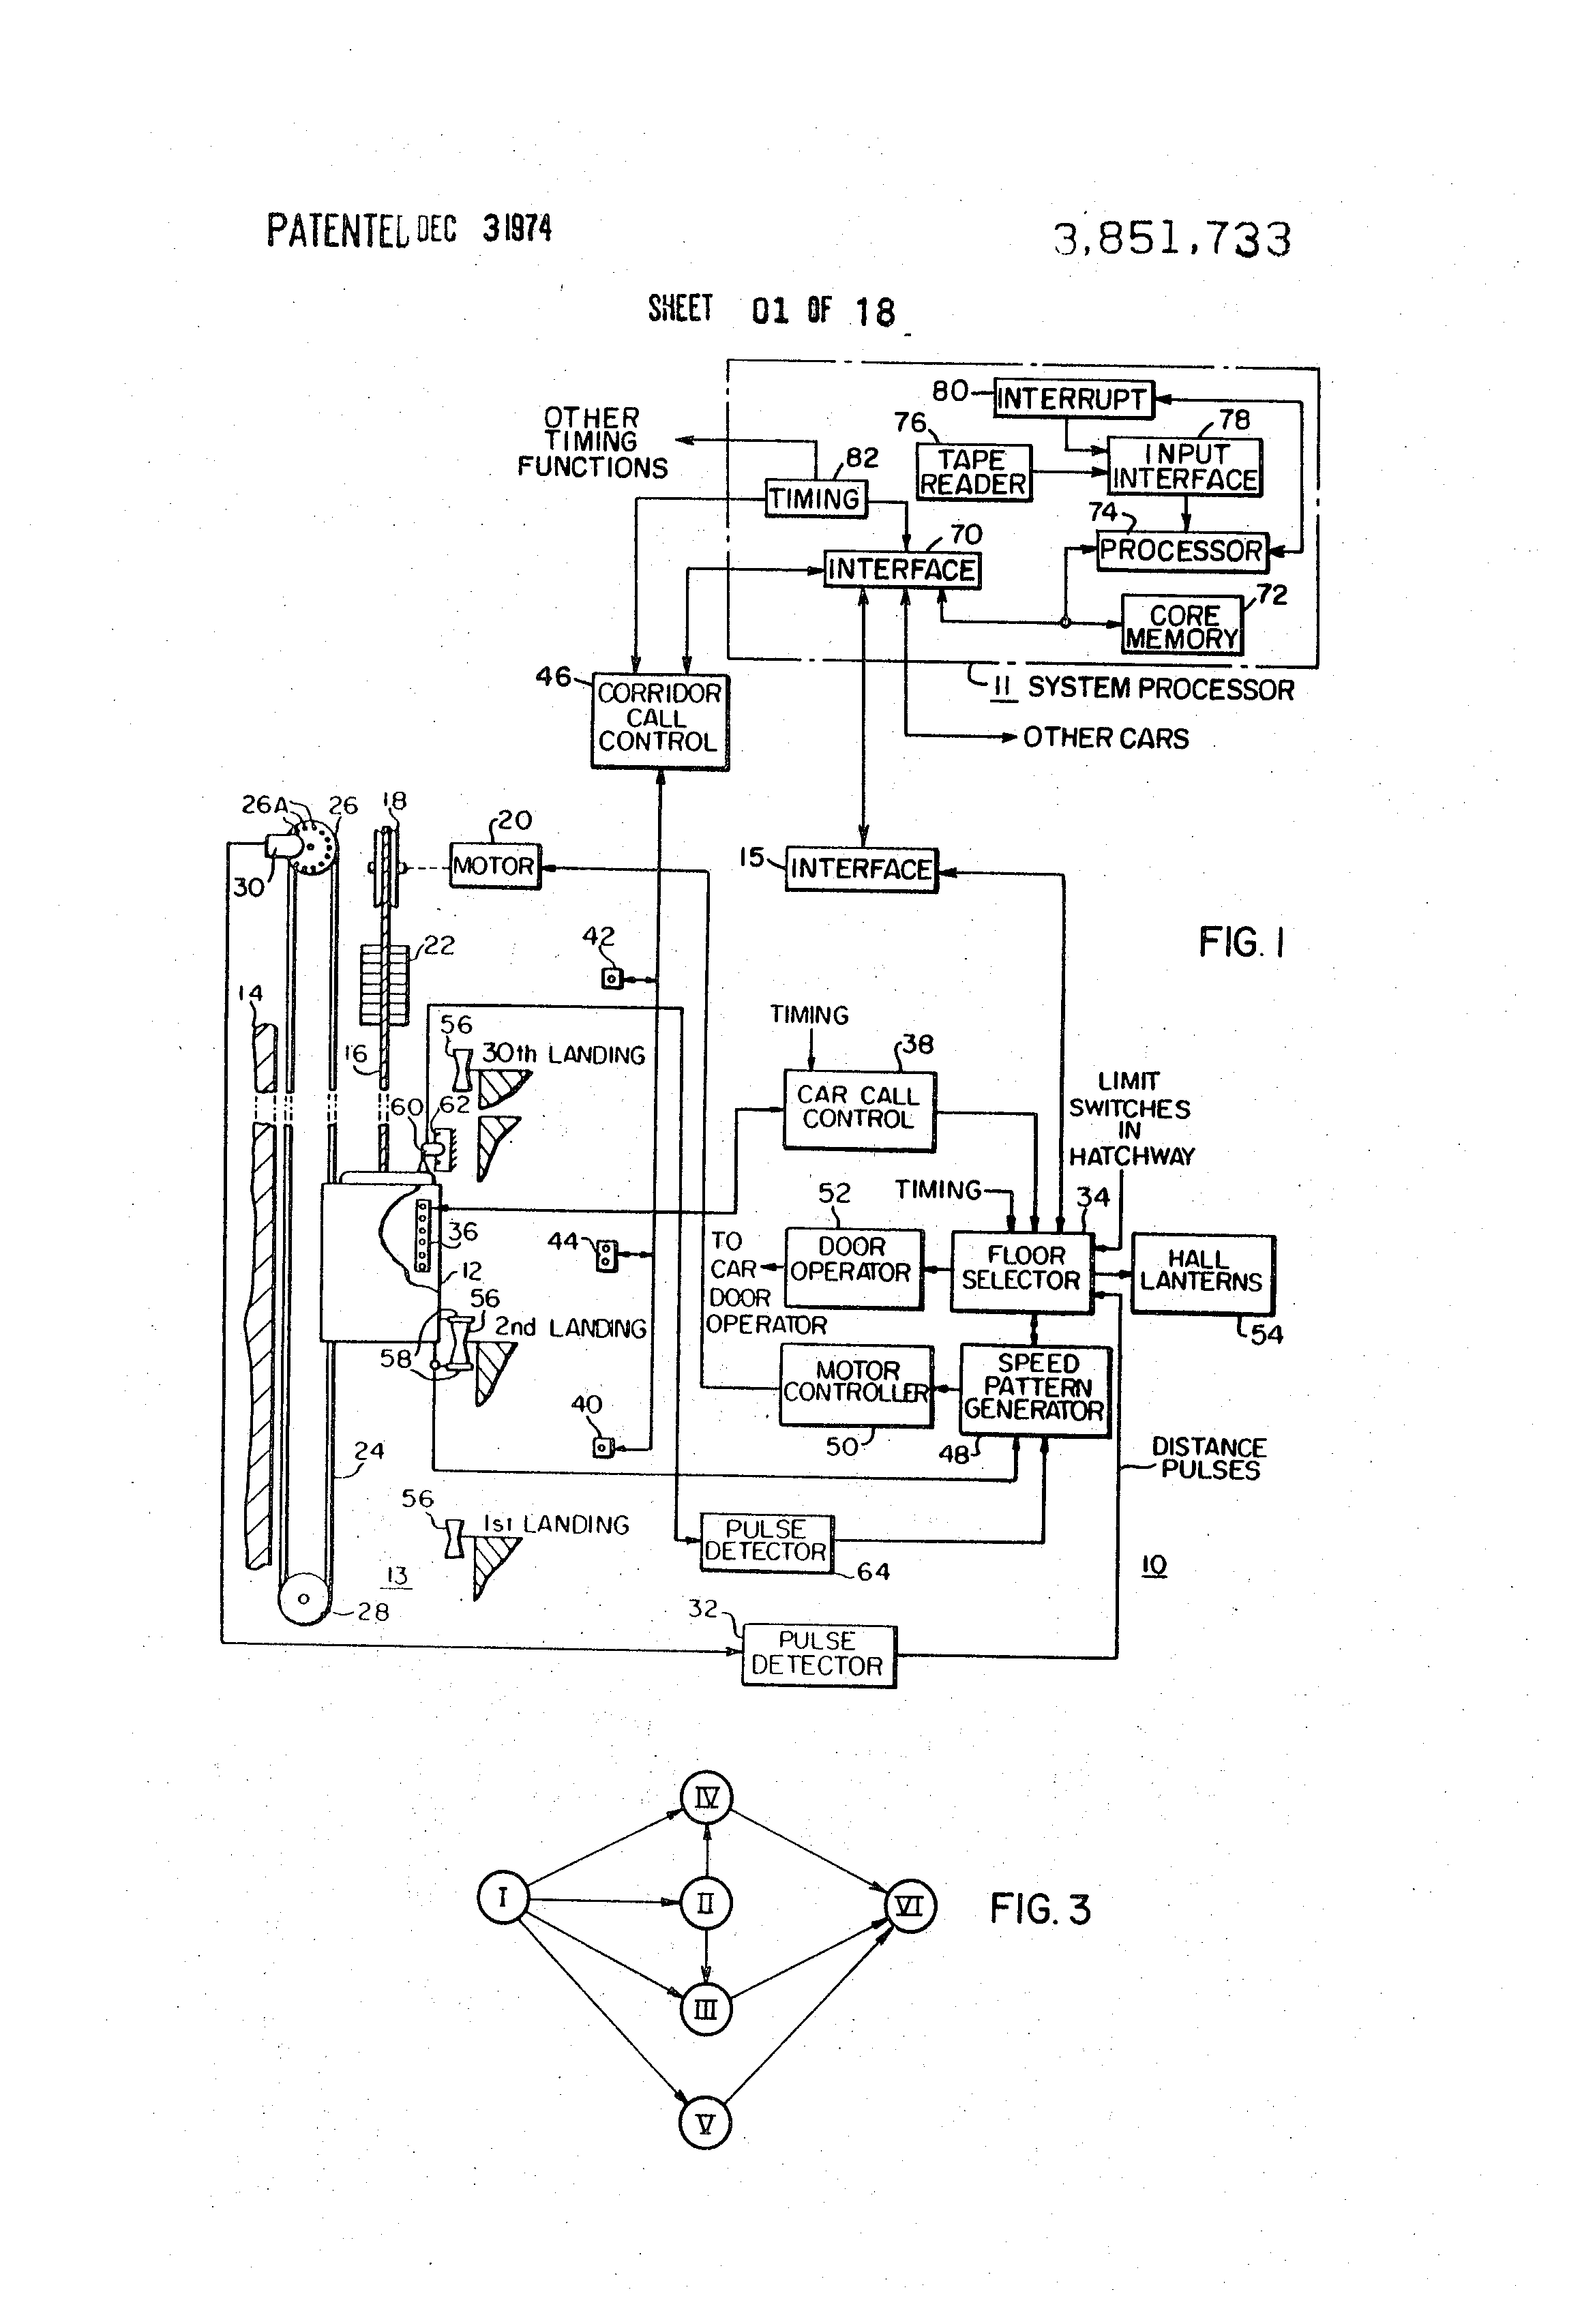 Brevet US3851733 - Elevator system - Google Brevets on